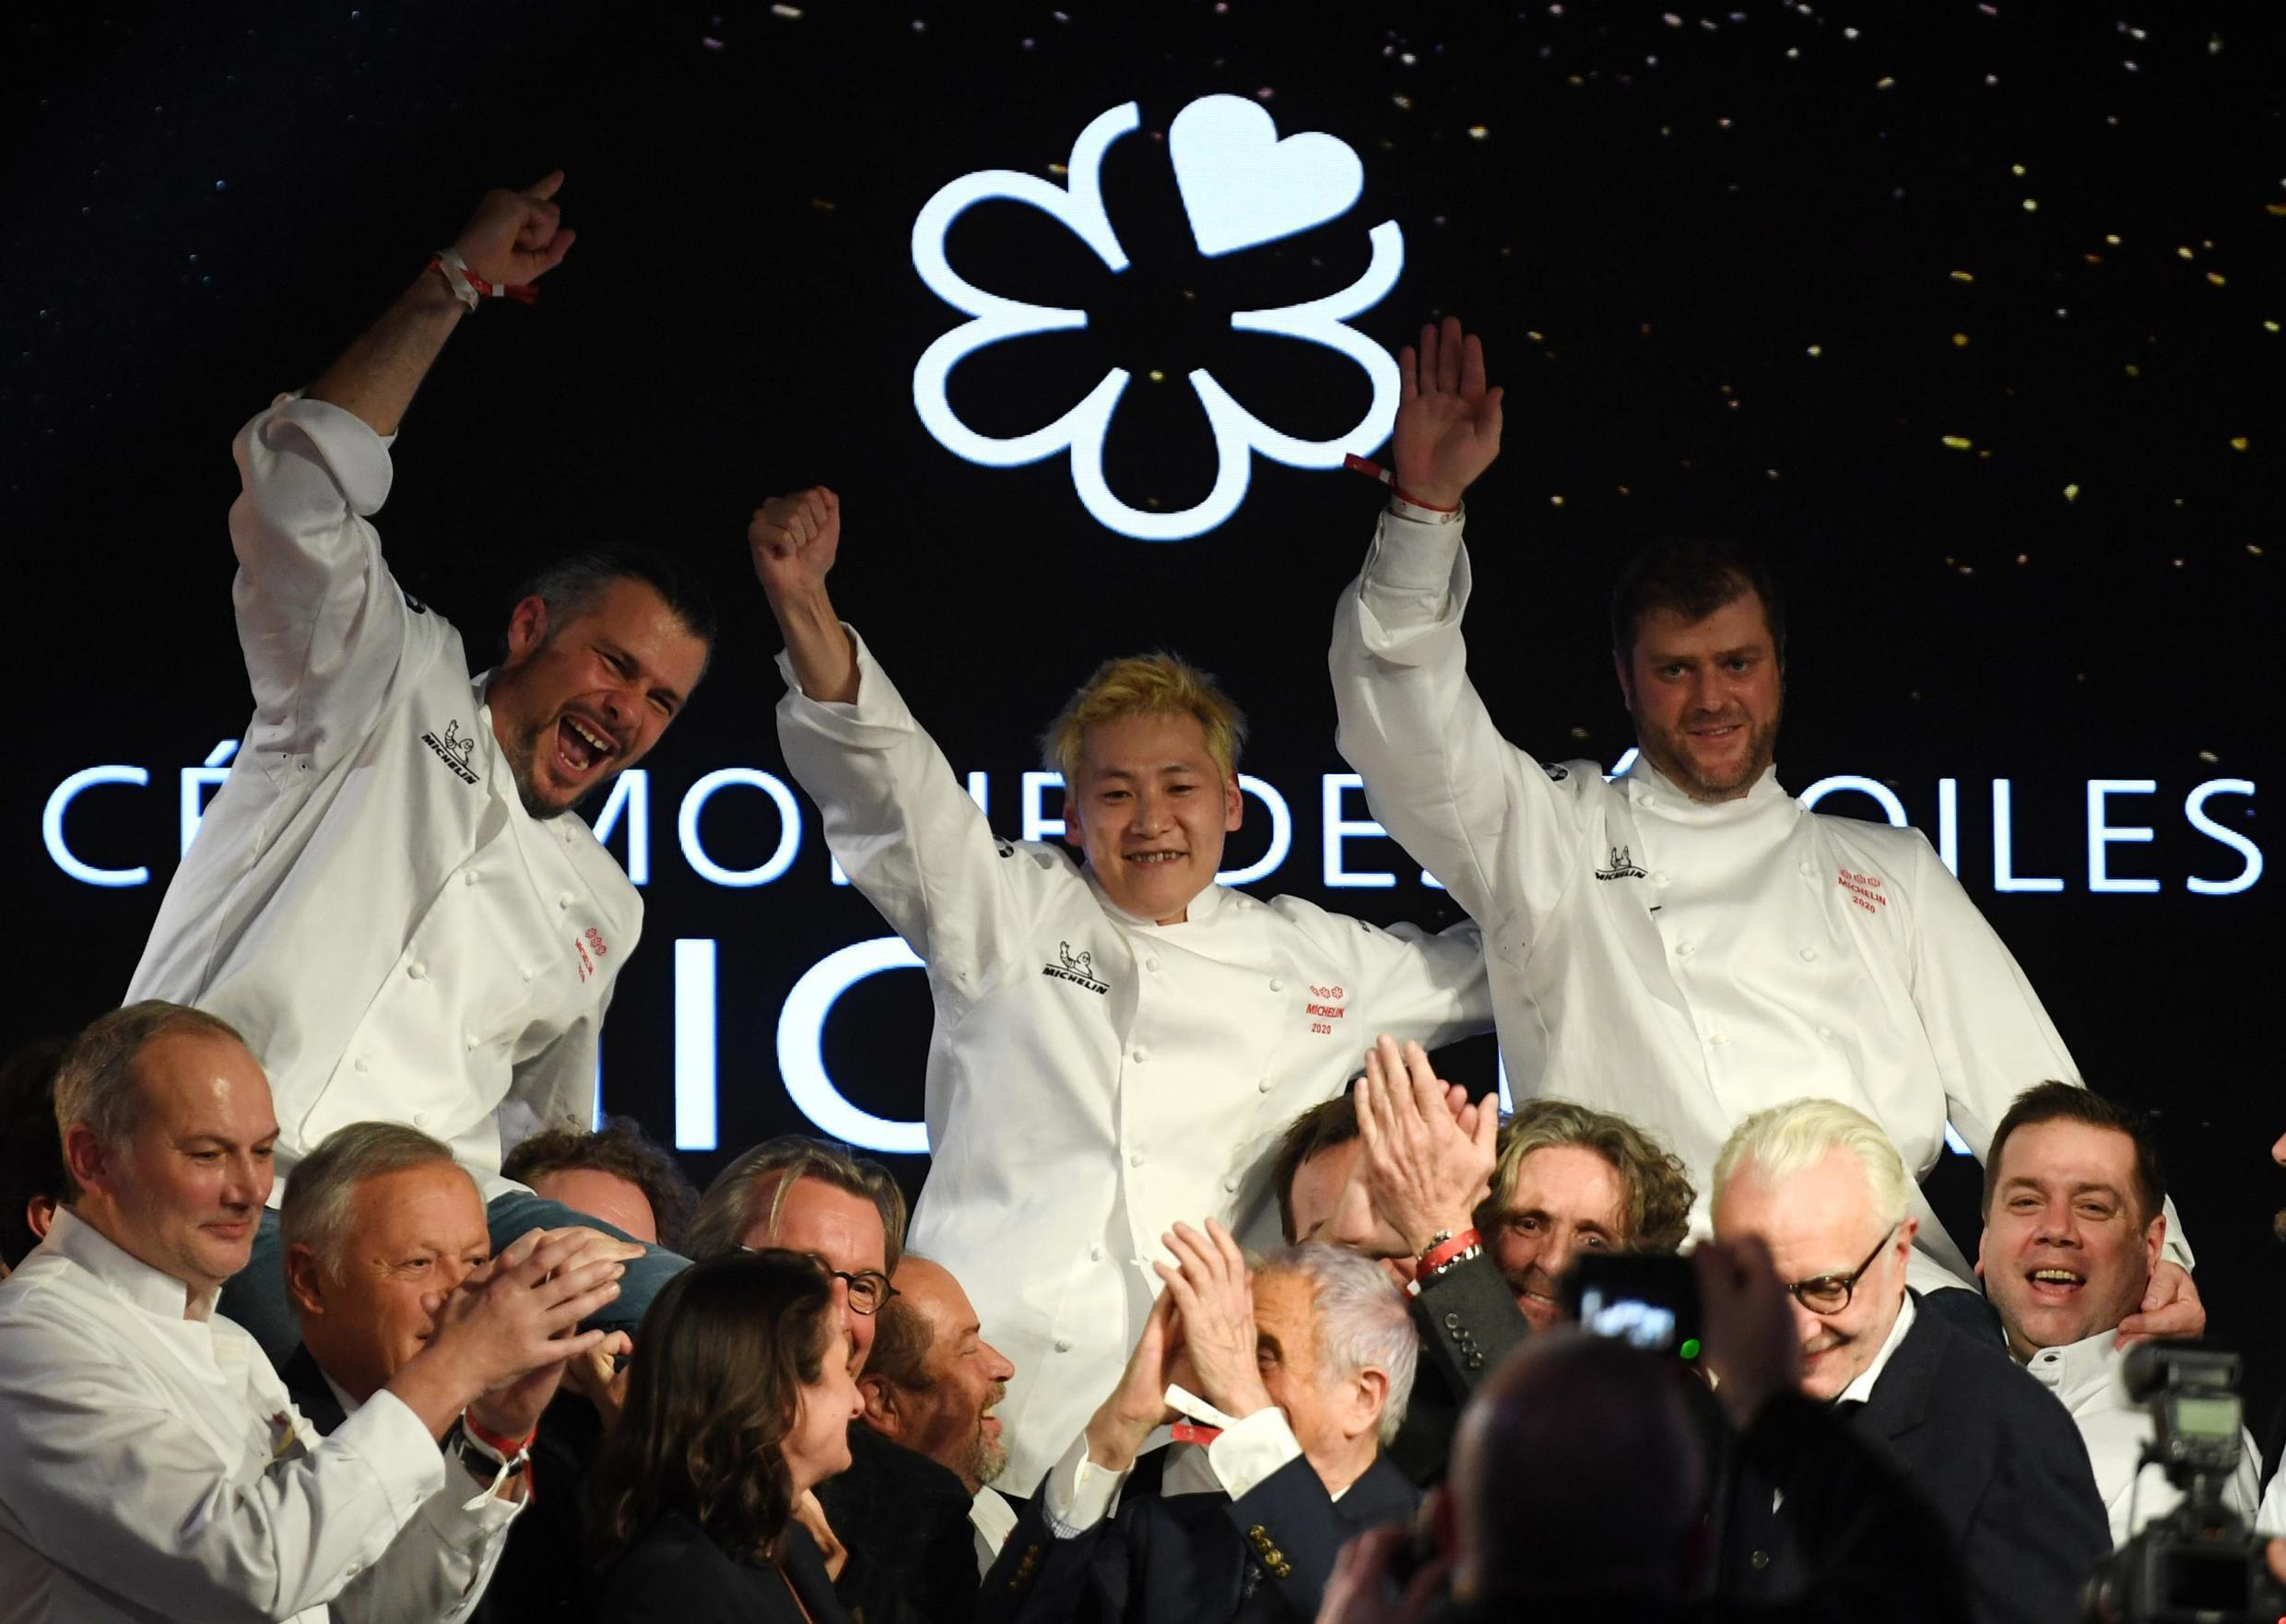 Glenn Viel (left), Kei Kobayashi and Christopher Coutanceau (right) were awarded three stars - Michelin's highest accolade - for the first time.